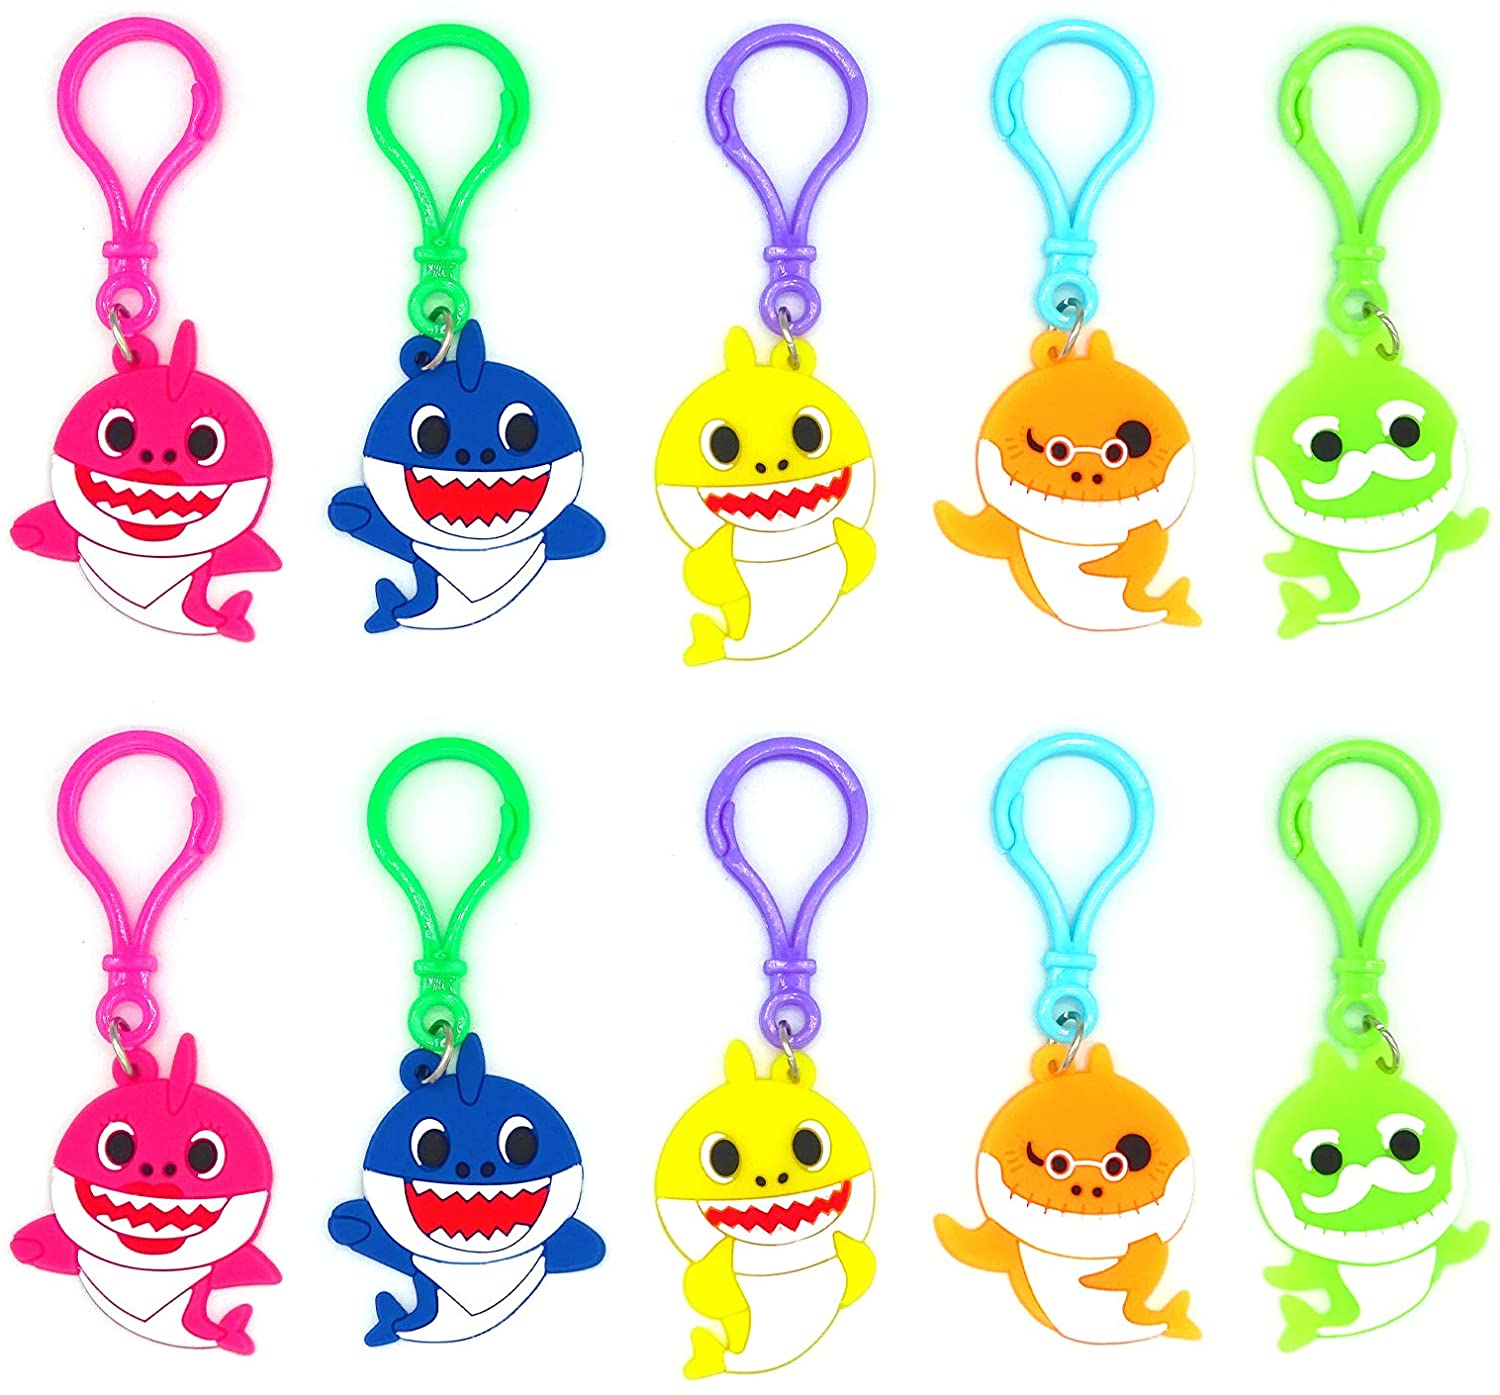 25 Pack Baby Cute Shark Keychains Toys for Boys Girls Kids Shark Theme Birthday Party Supplies Party Bag Pendant Gift Fillers Key Tags Goodie Bag Stuffer Holiday Charms Suppliers